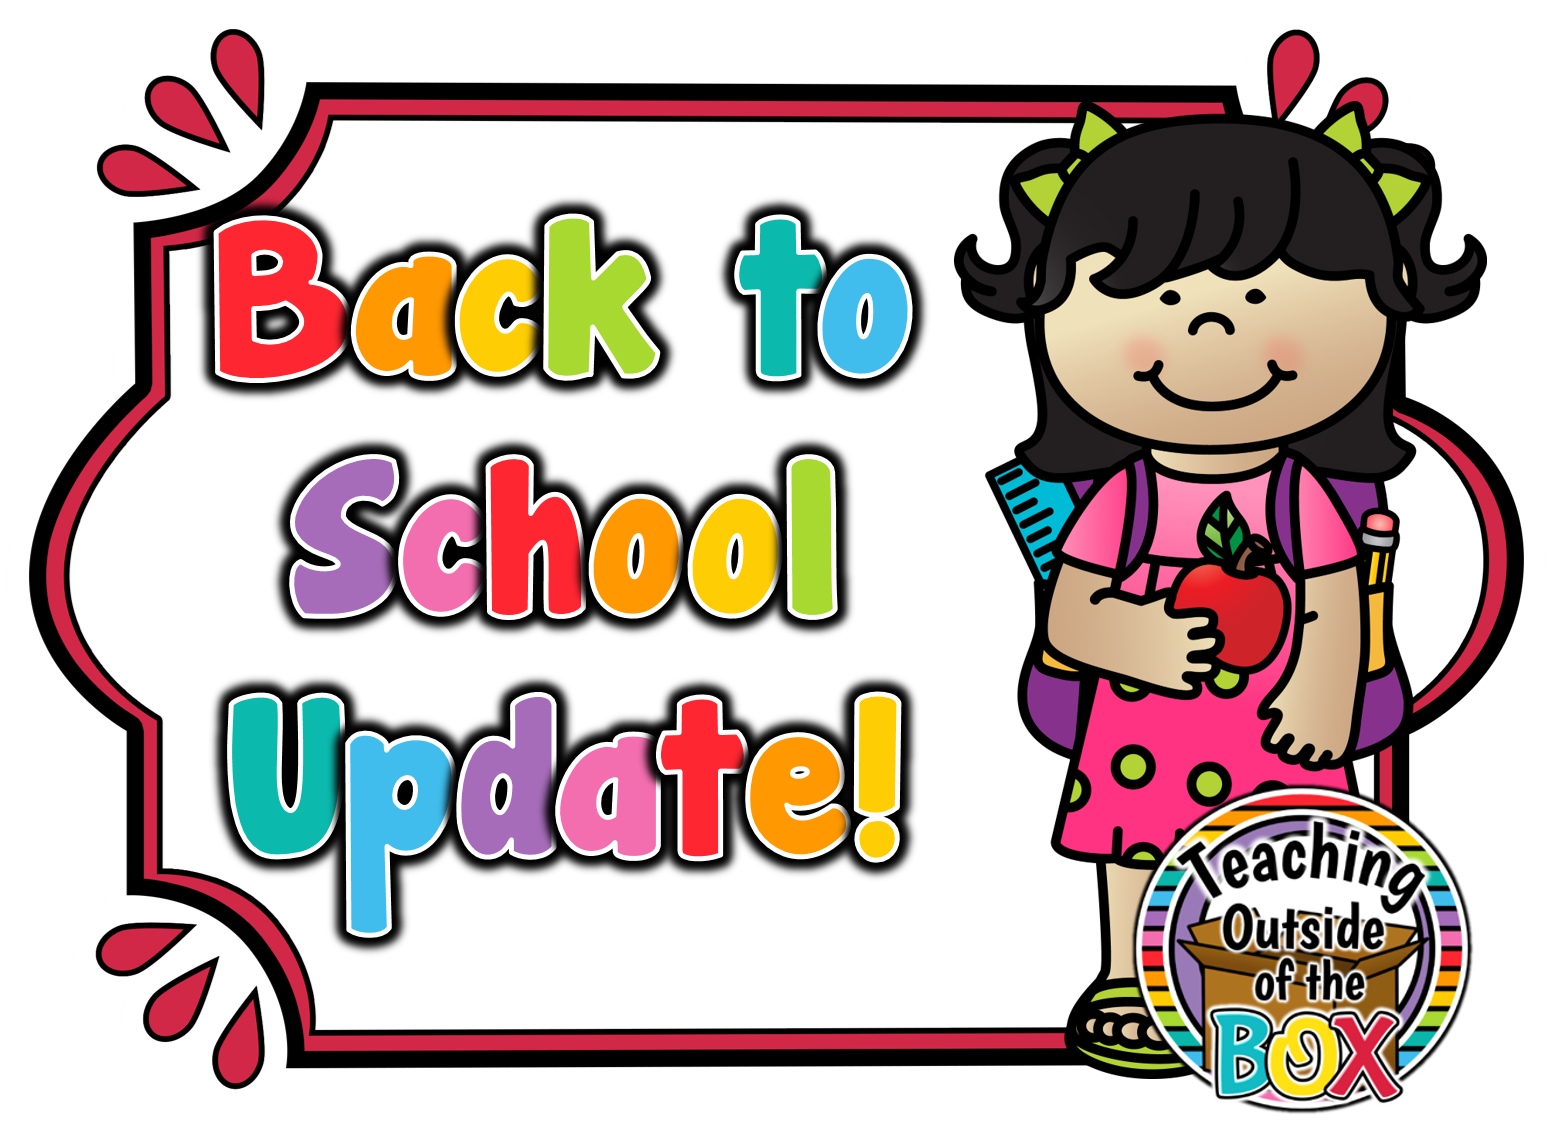 Kicked out of school clipart clip art library library Teaching Outside of the Box... clip art library library